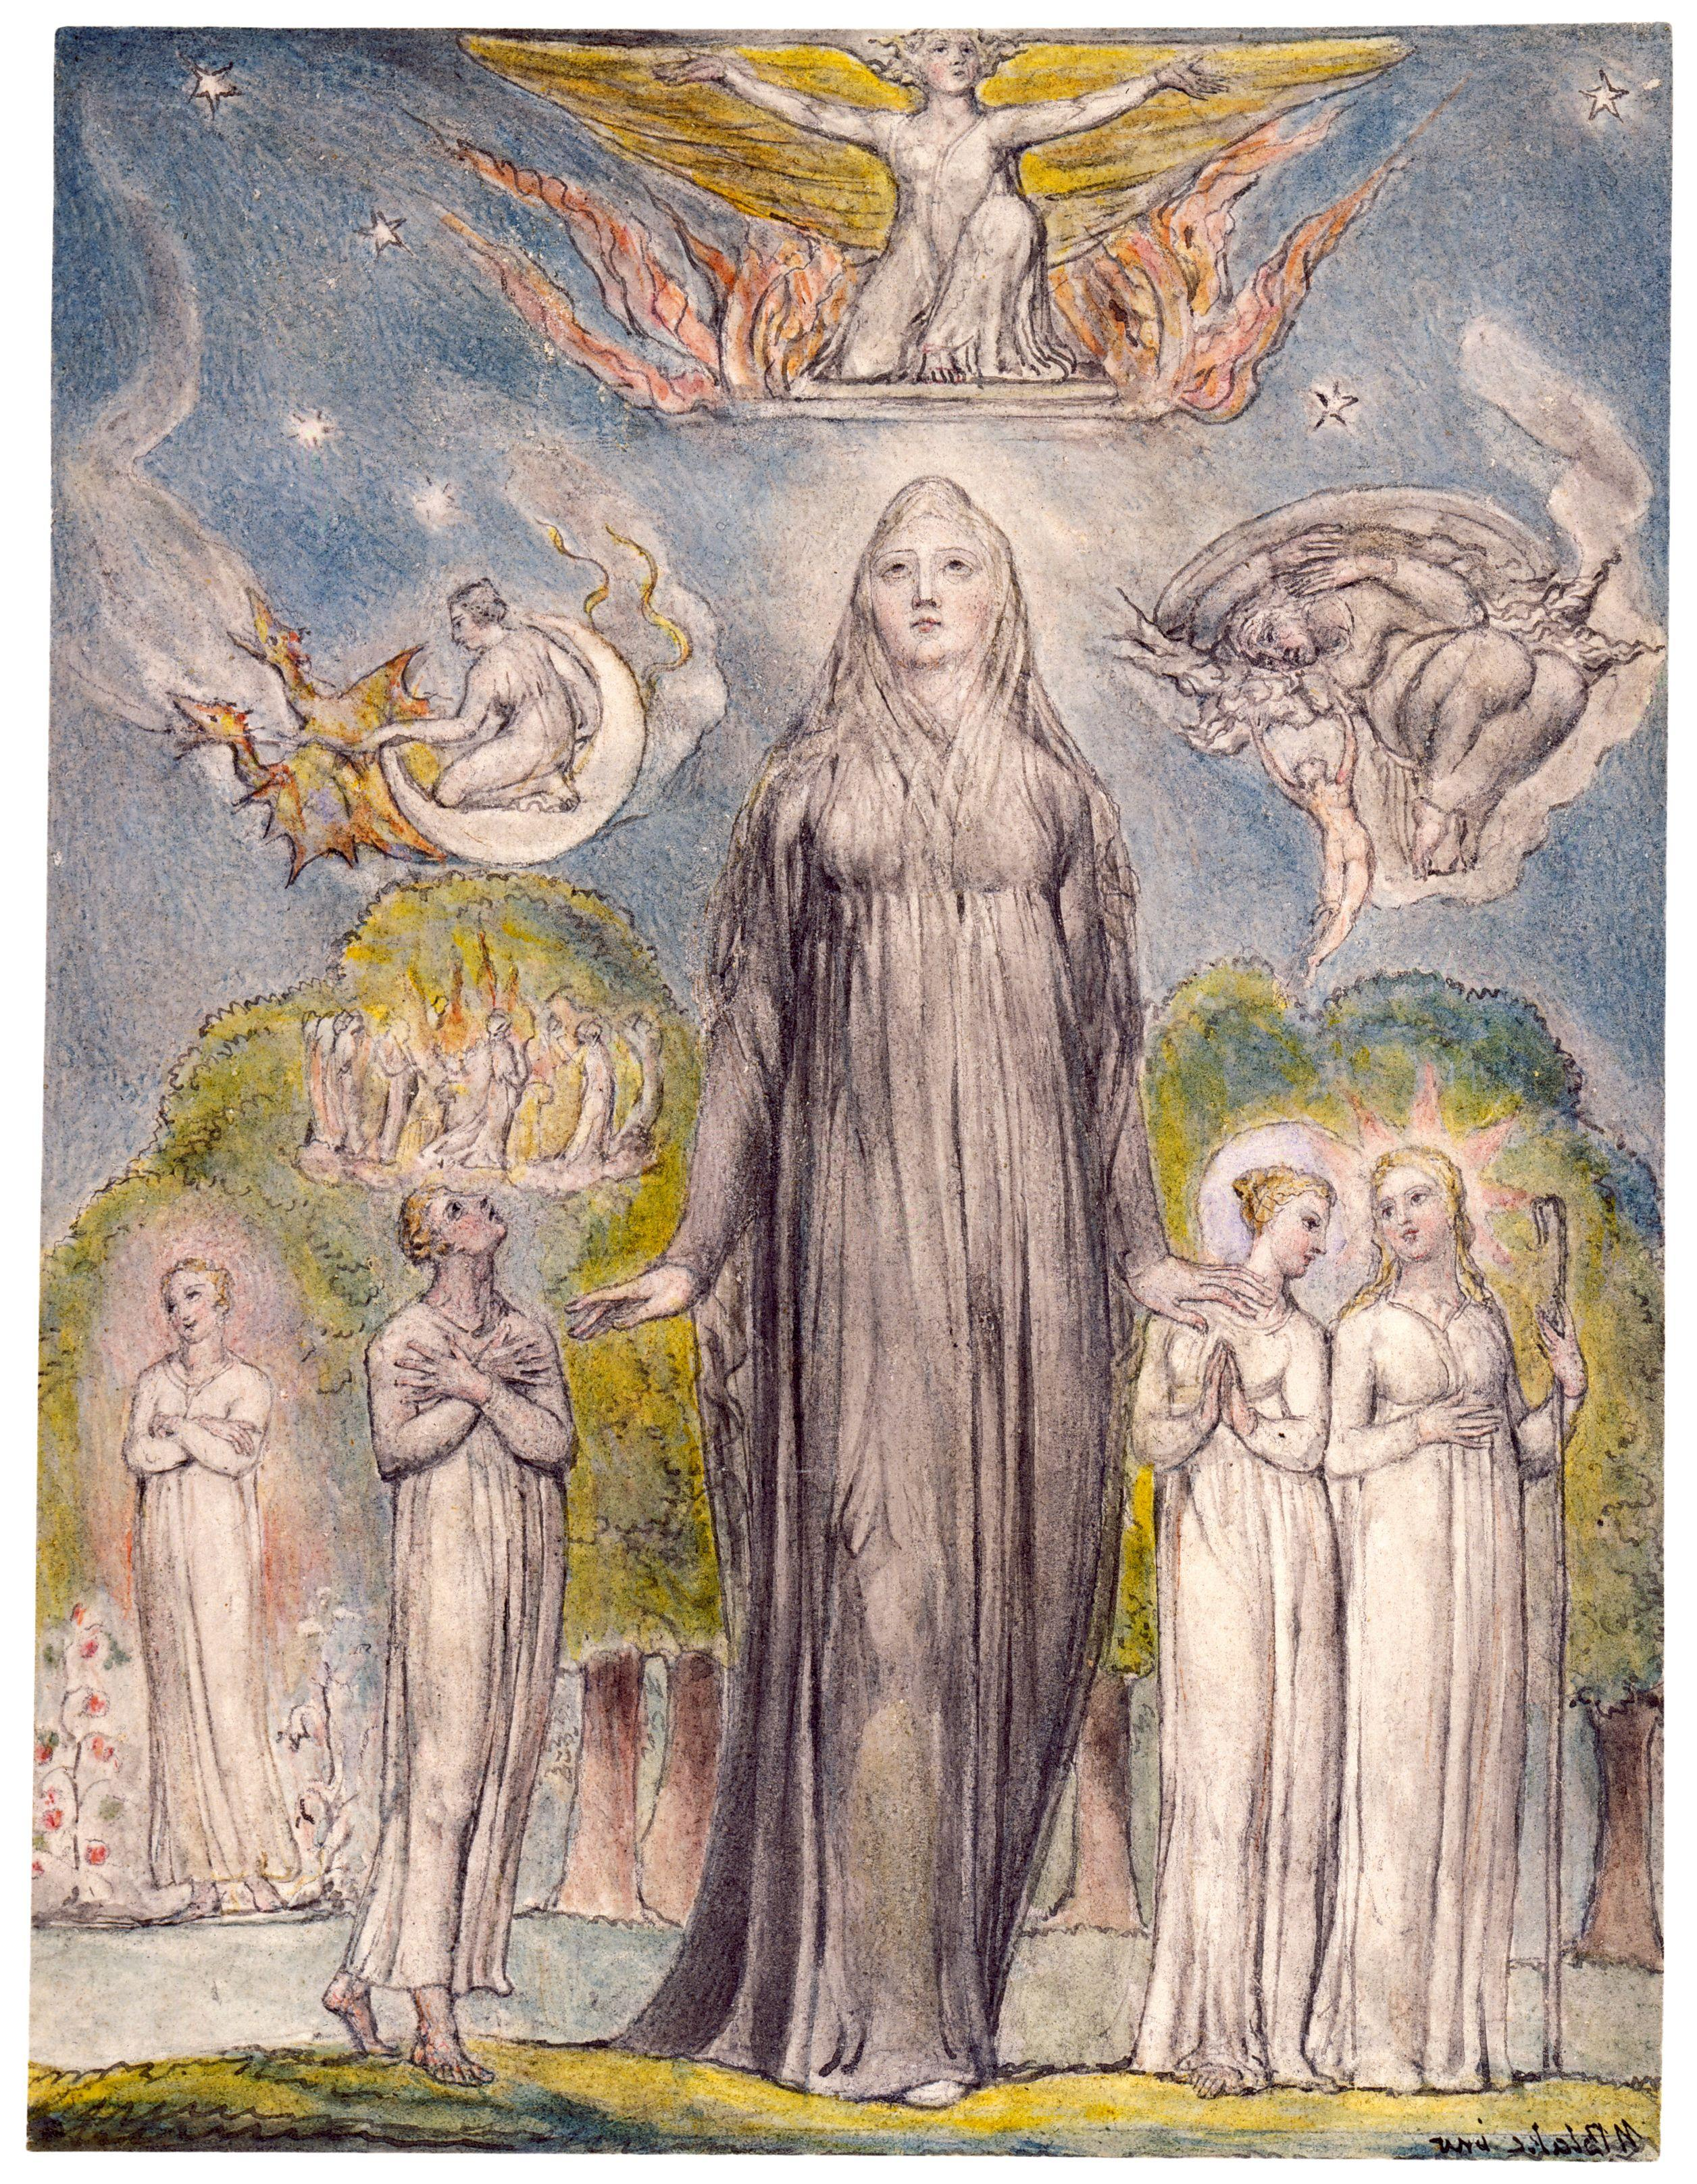 the work of william blake essay In his life of william blake (1863) alexander gilchrist warned his readers that blake neither wrote nor drew for the many, hardly for work'y-day men at all, rather for children and angels himself 'a divine child,' whose playthings were sun , moon, and stars, the heavens and the earth yet blake himself believed that his.